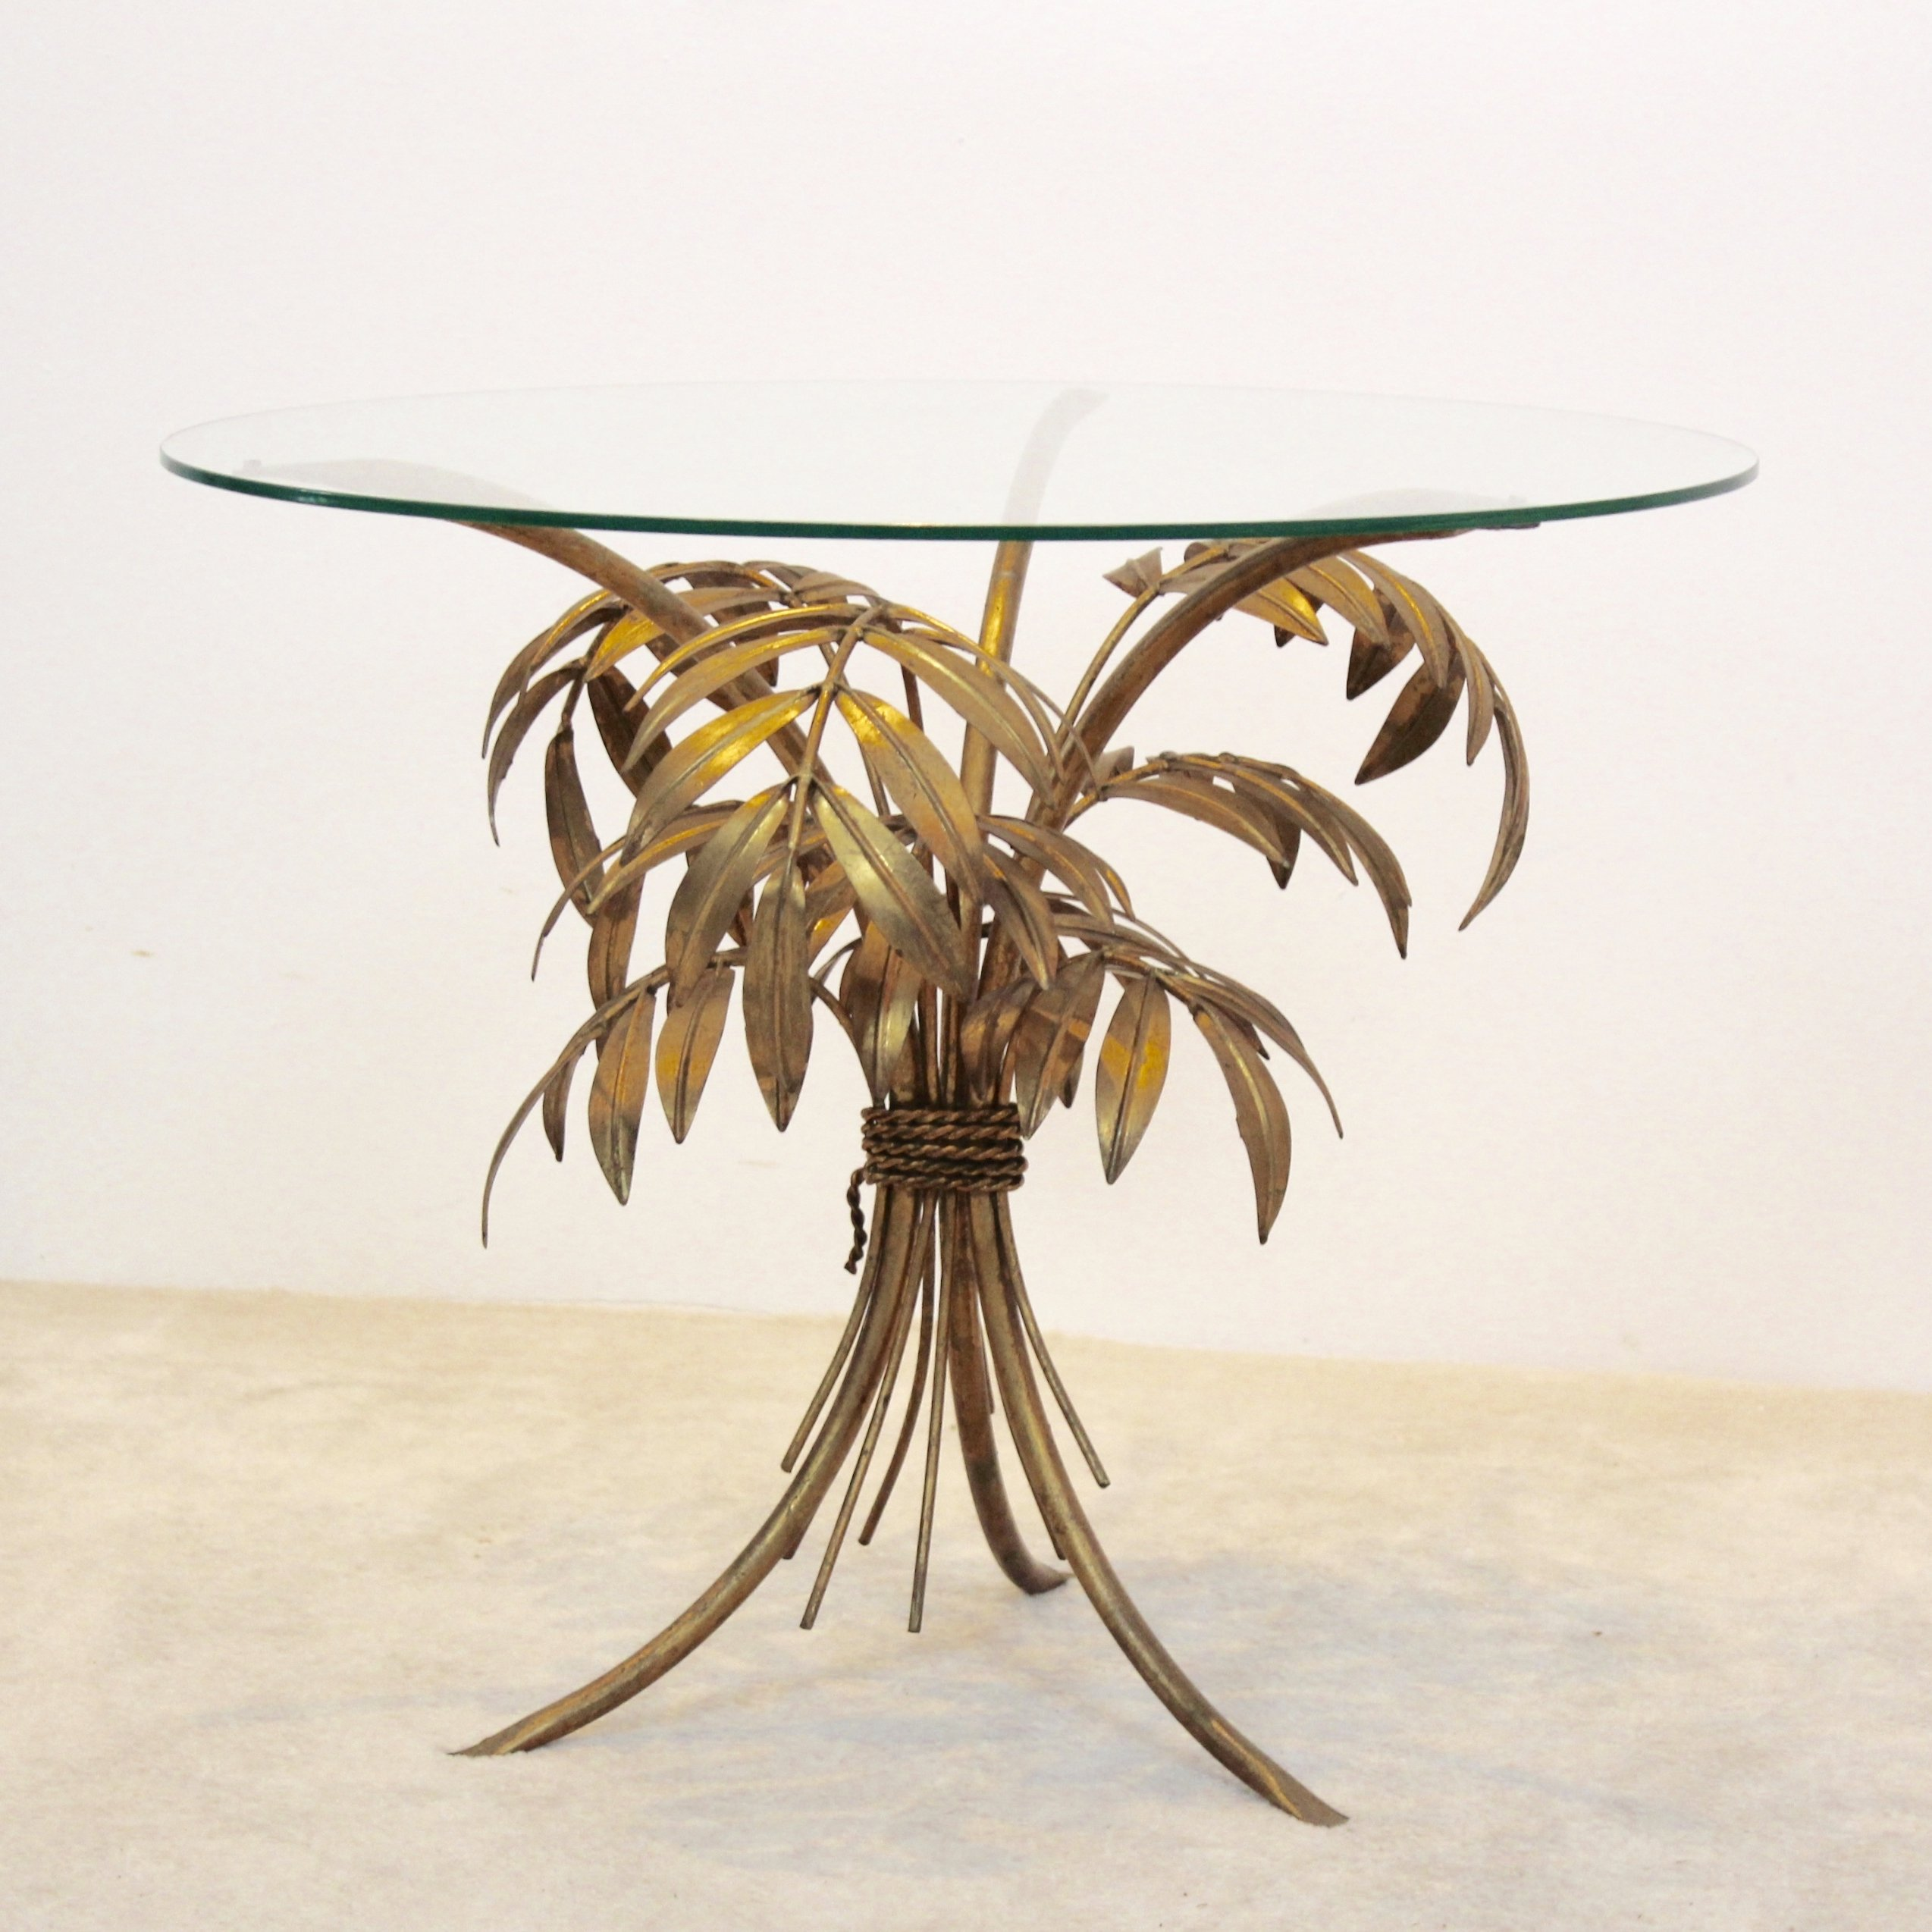 Hollywood Regency Gilt Palm Tree Coffee Table By Hans Kögl, Germany